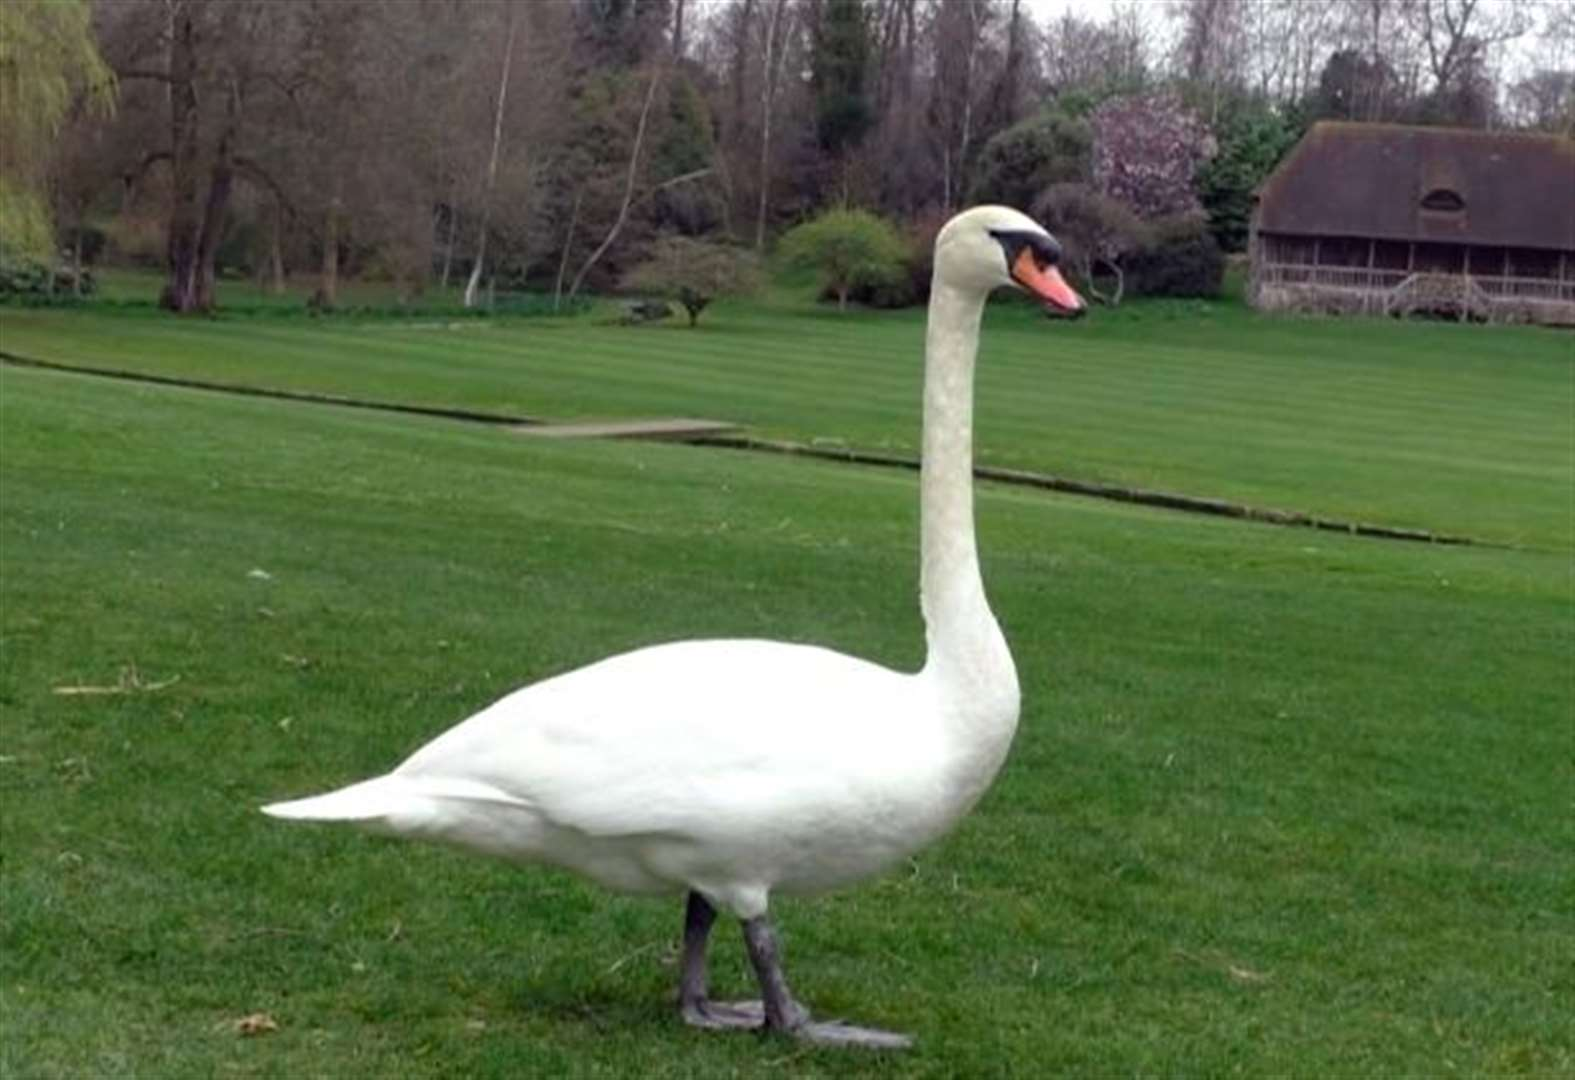 Mayor's 400th year of owning swans